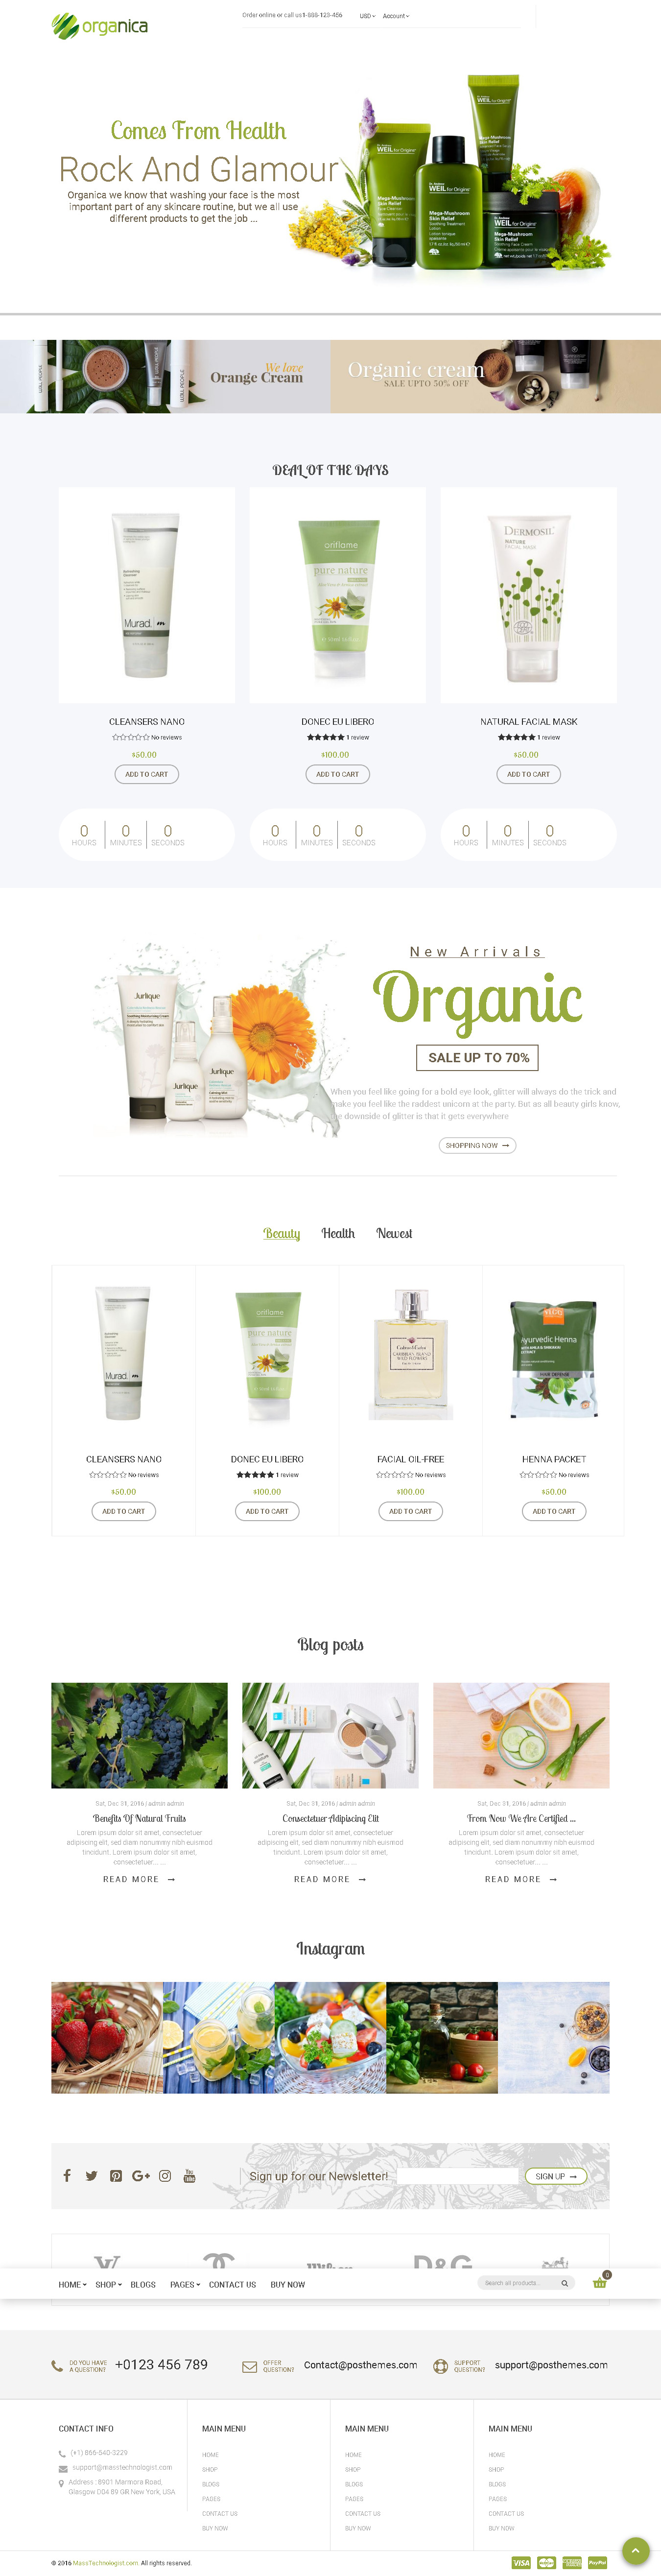 Best Shopify themes for Cosmetics store - Organica - Beauty, Natural Cosmetics, Food, Farn, Eco, Organic Shopify Theme - Sections Ready